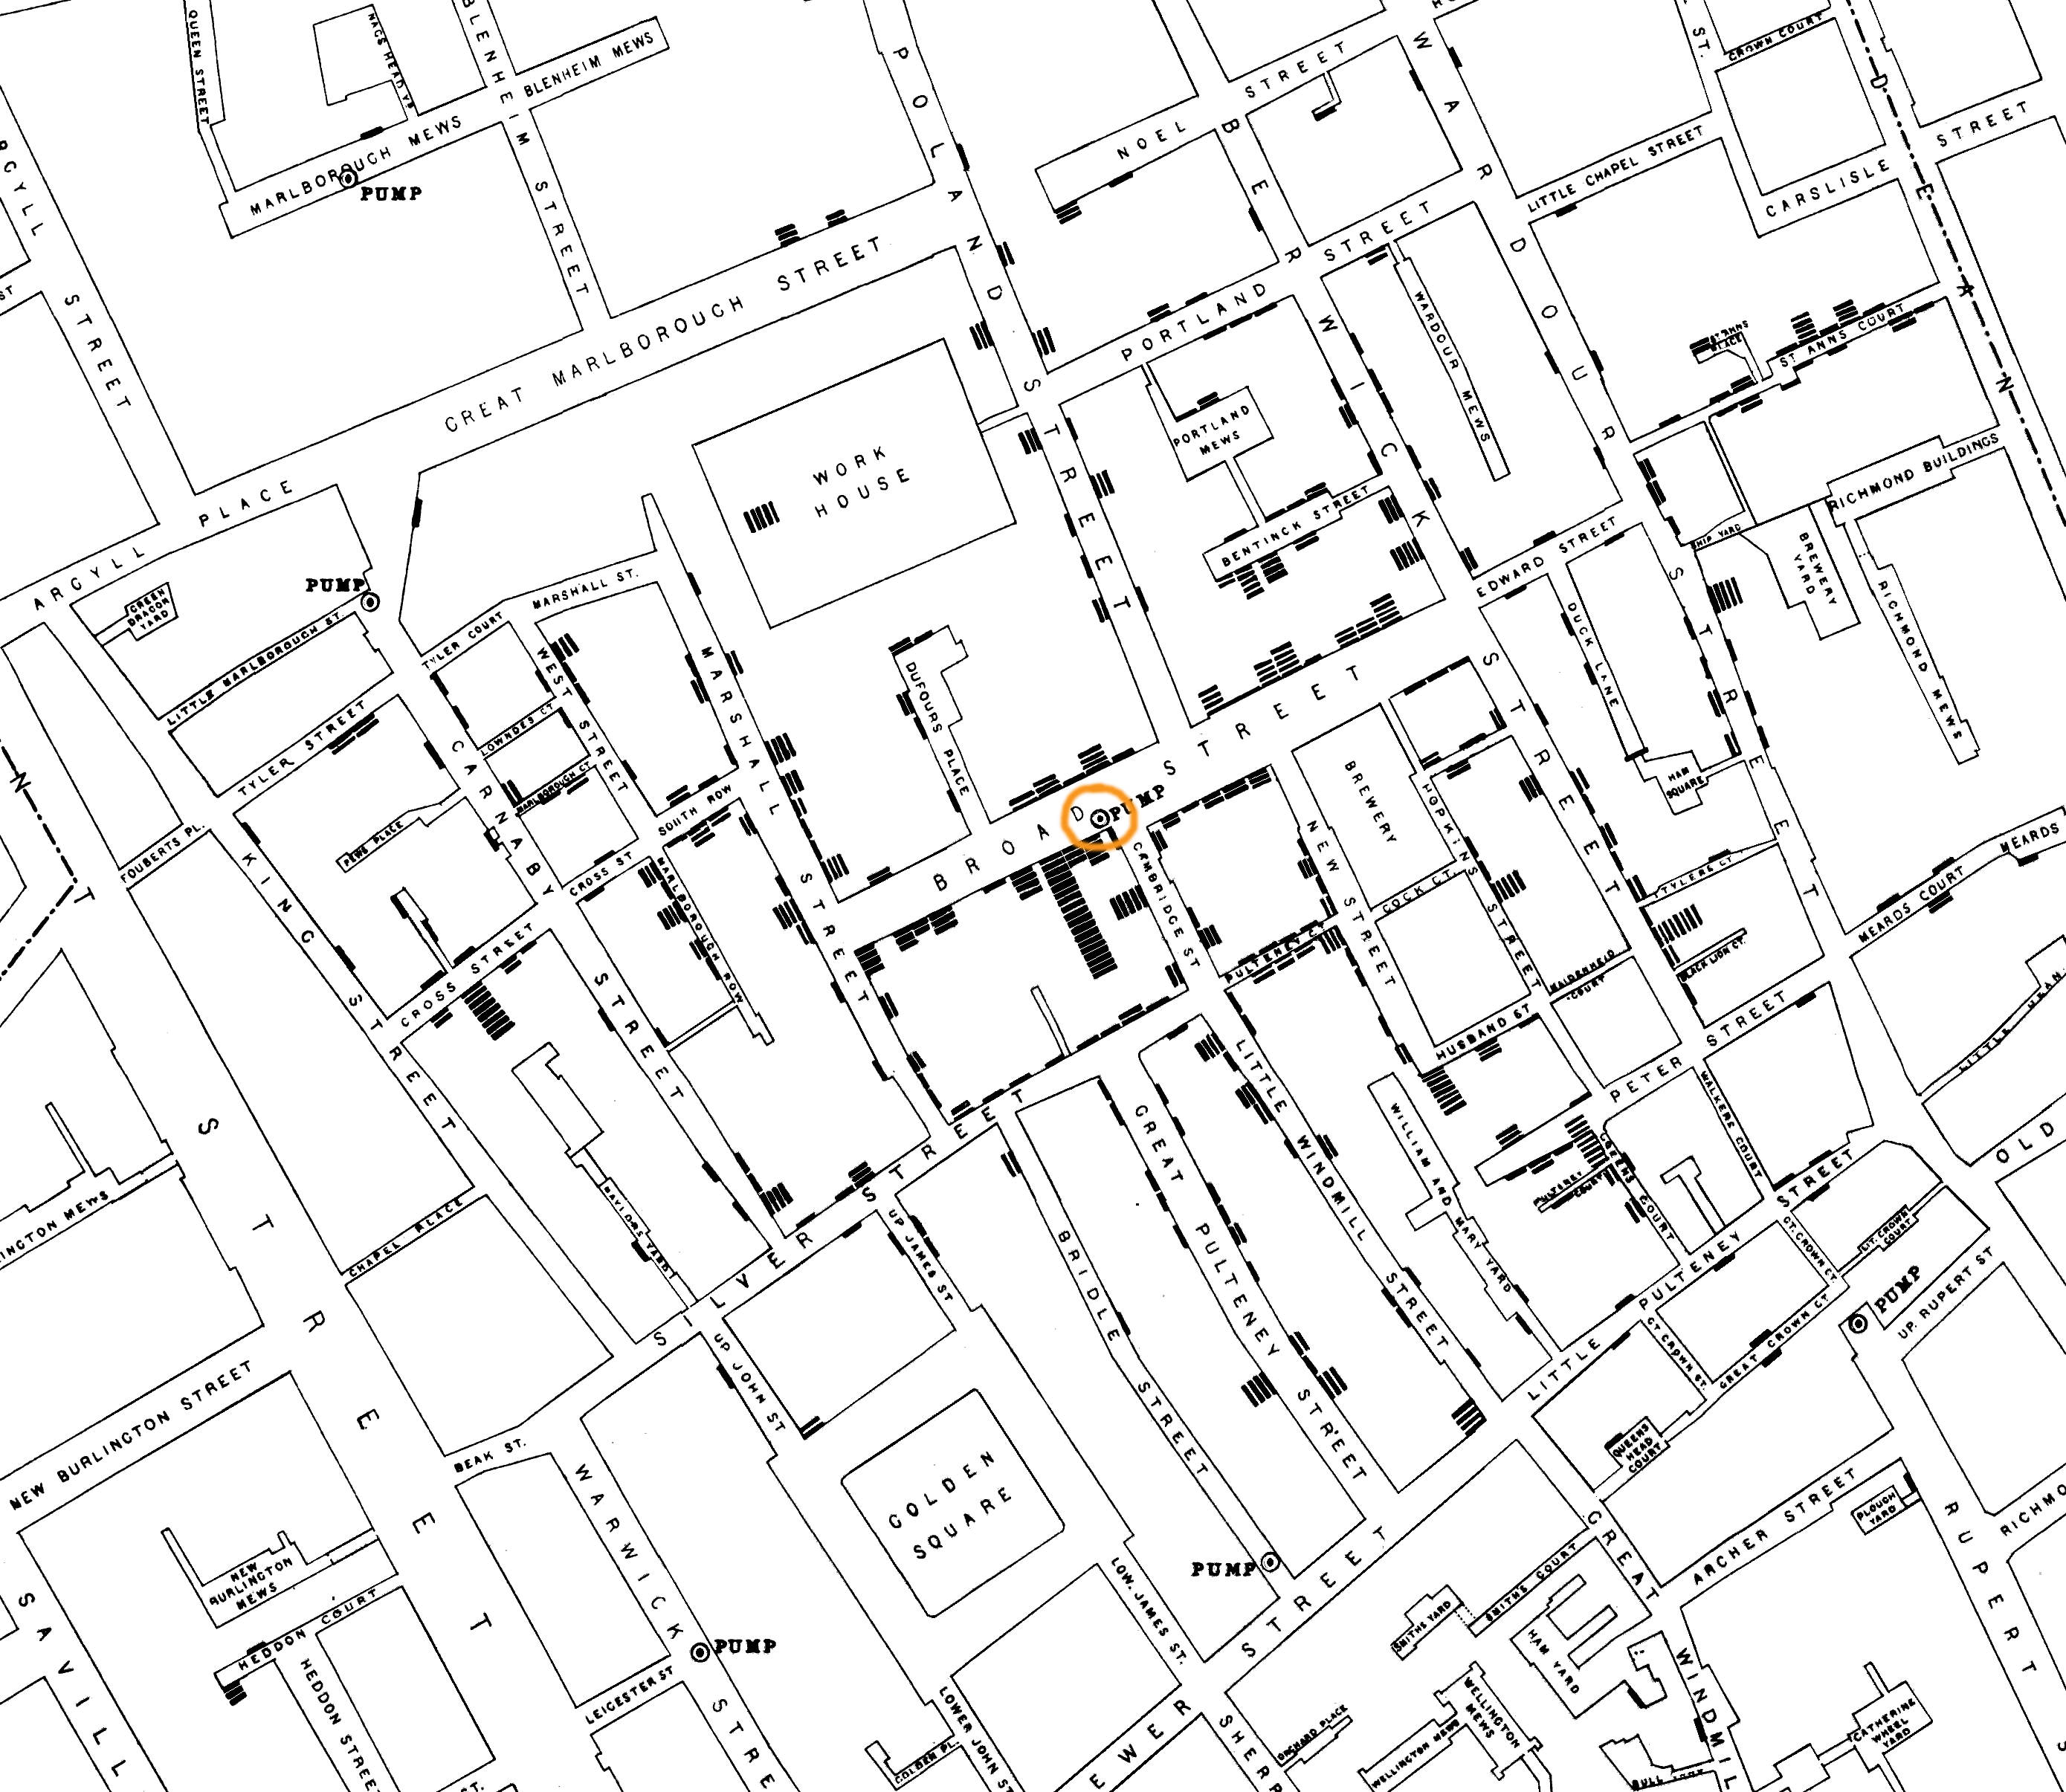 Cholera map, Broad street